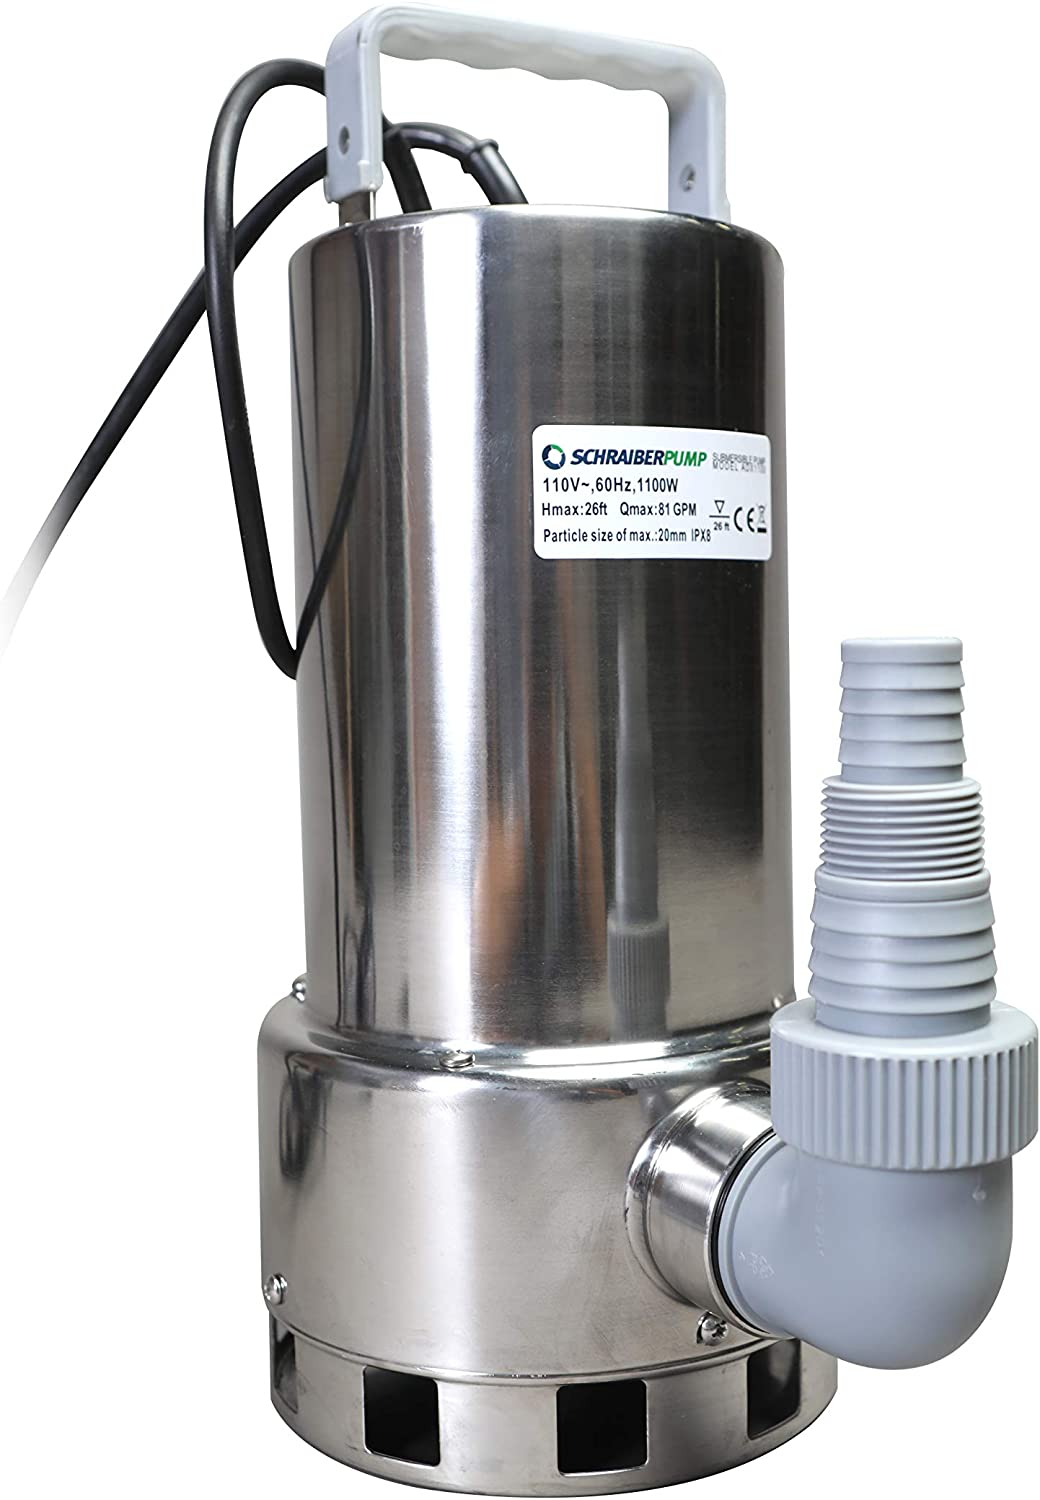 Submersible Clean/Dirty Water Sump Pump 1.5HP w/water level sensor (4 ON/OFF positions, no external float switch) 4860GPH, 26'Head, Thermal Protector, Stainless Steel, Copper Winding - Schraiberpump